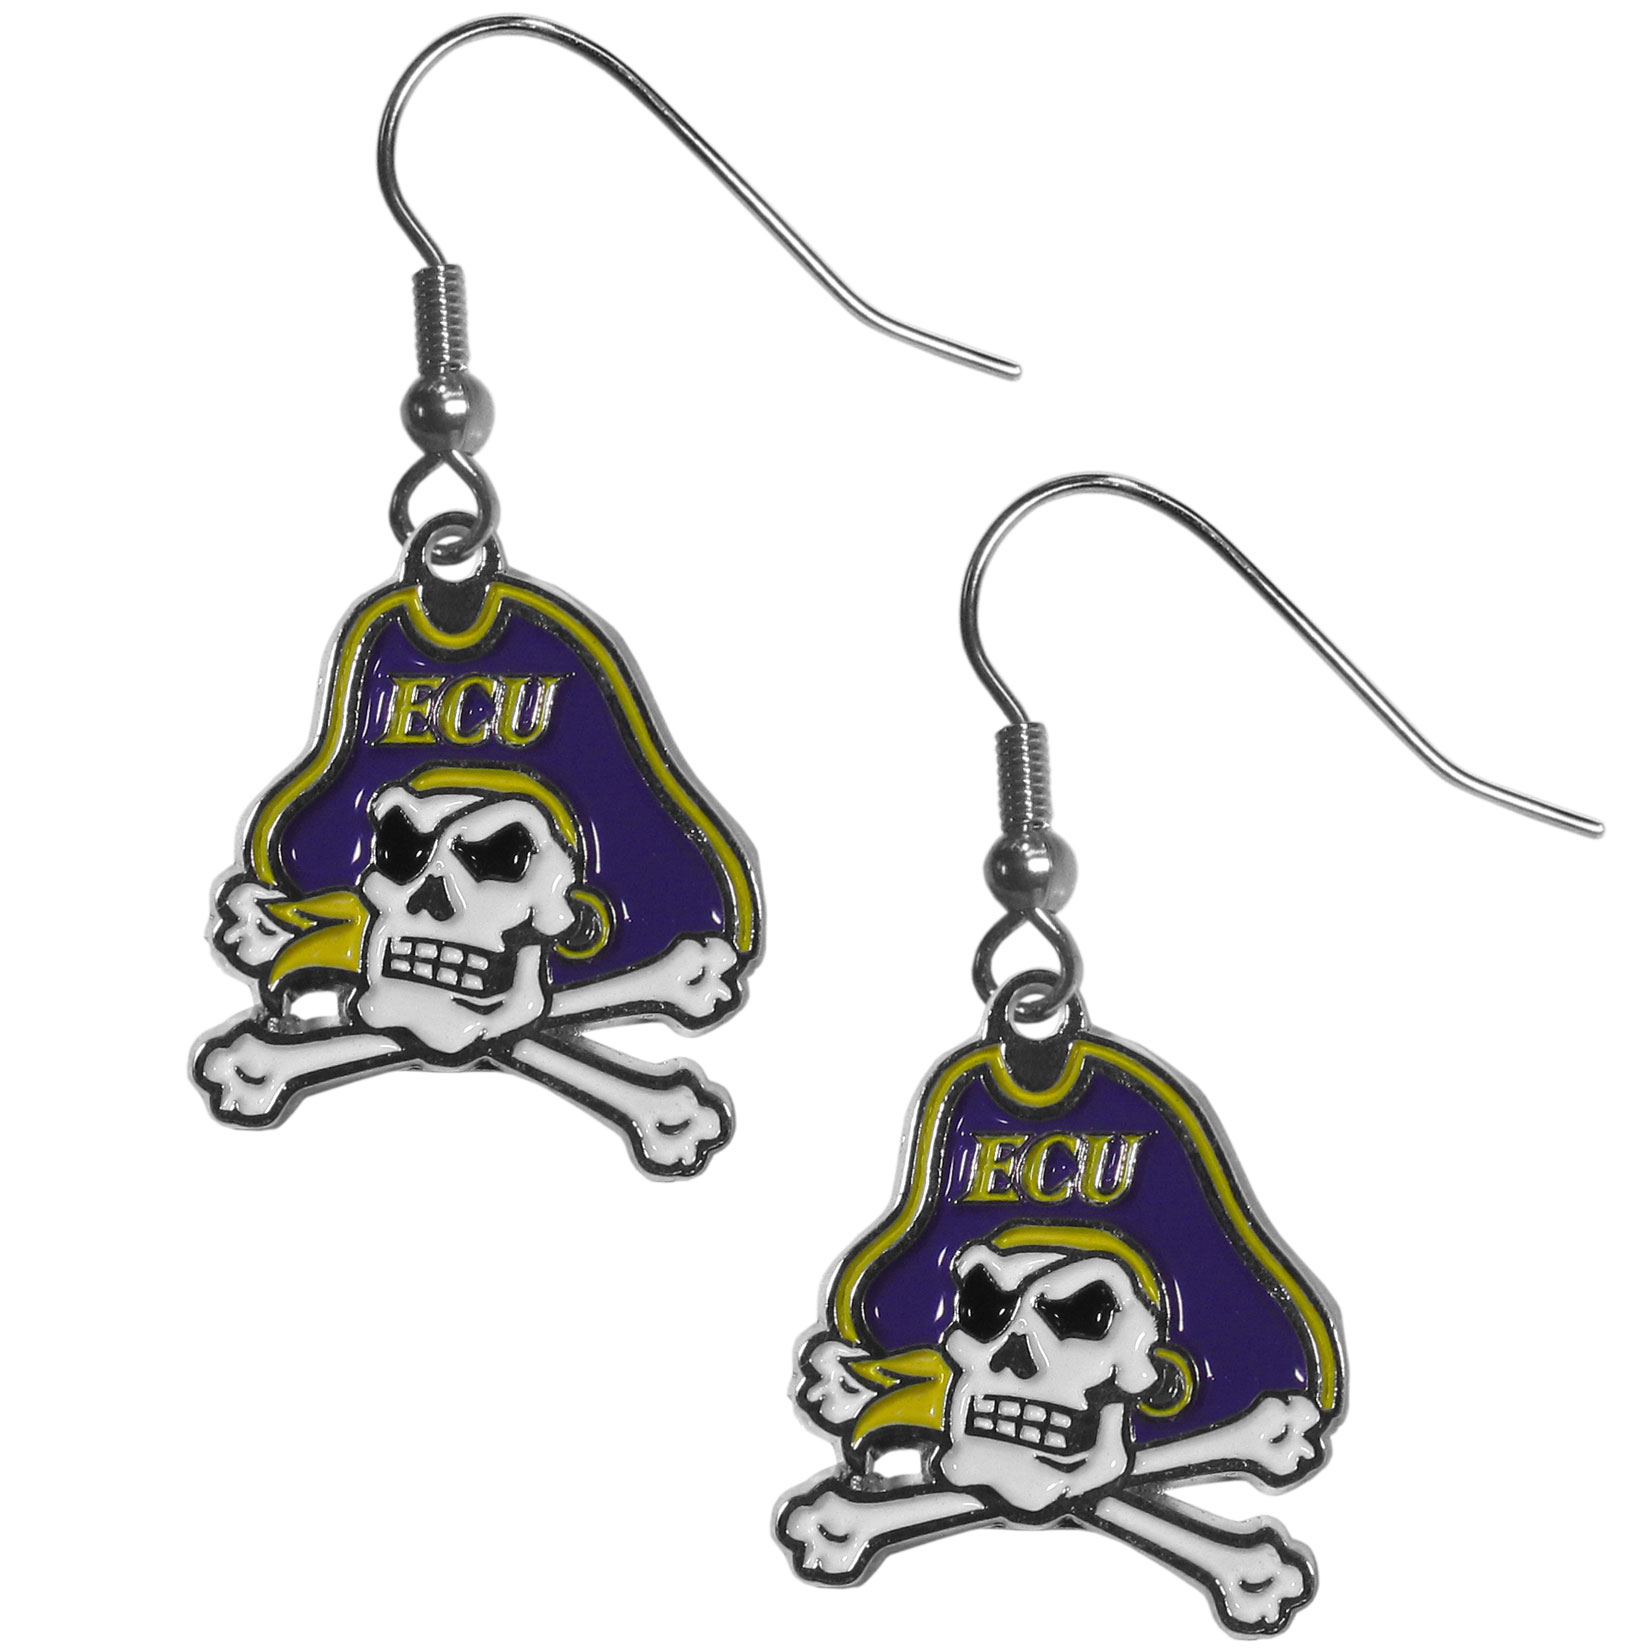 East Carolina Pirates Chrome Dangle Earrings - Our officially licensed chrome dangle earrings have fully cast East Carolina Pirates charms with exceptional detail and a hand enameled finish. The earrings have a high polish nickel free chrome finish and hypoallergenic fishhook posts.